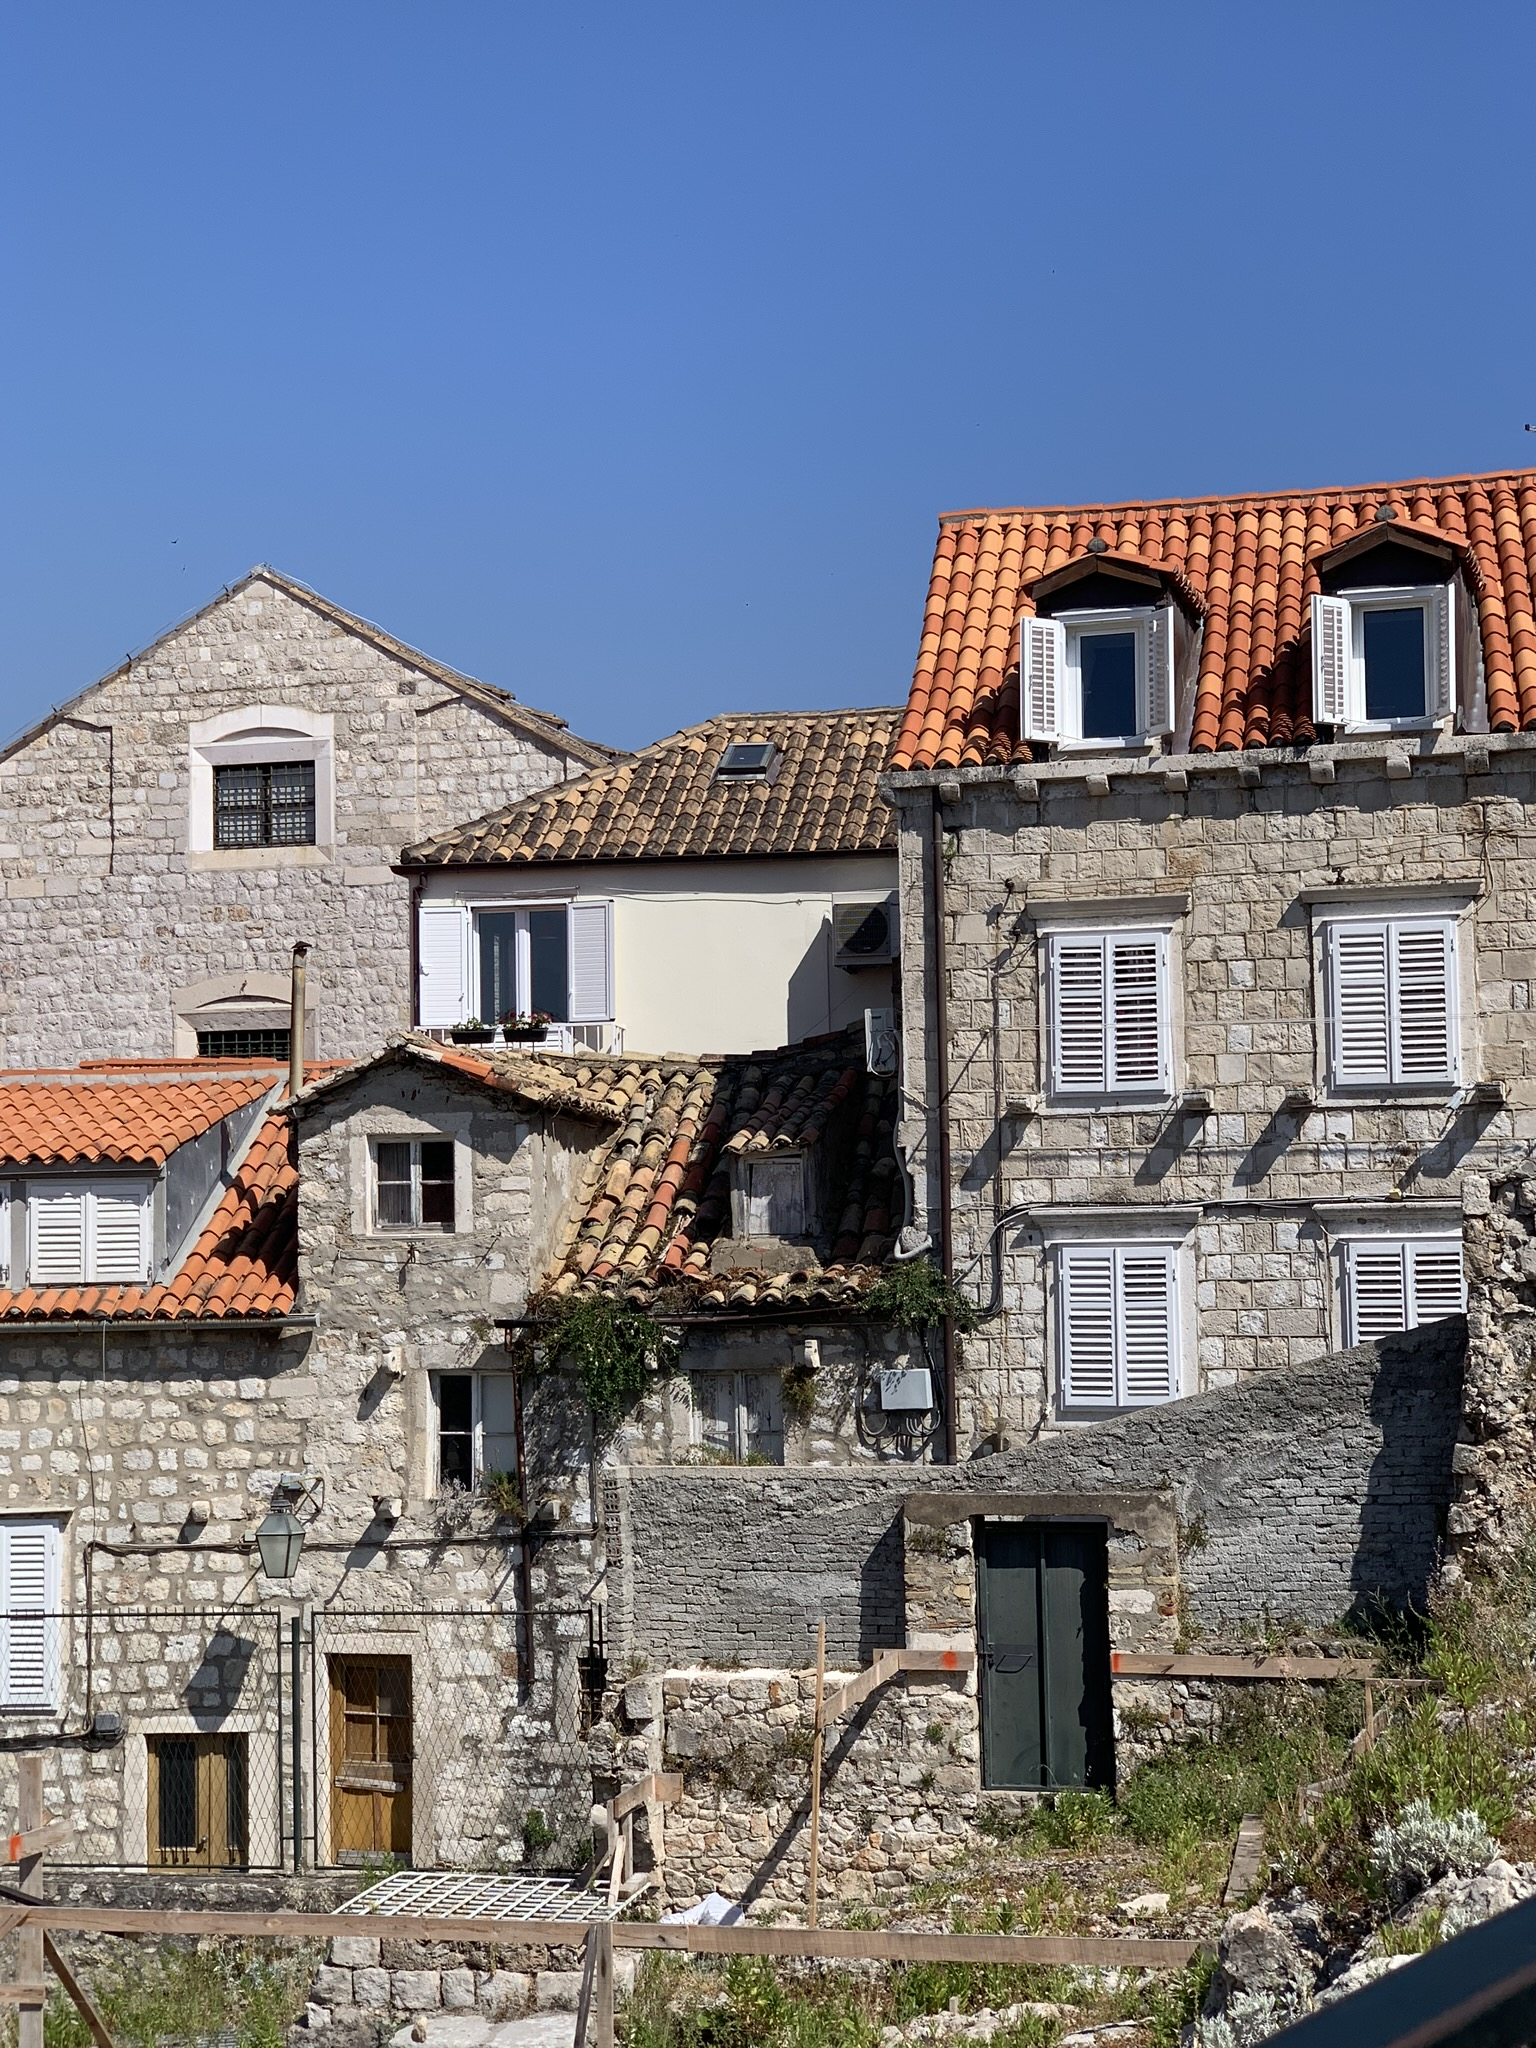 view of the roofs within the old town city walls in dubrovnik croatia